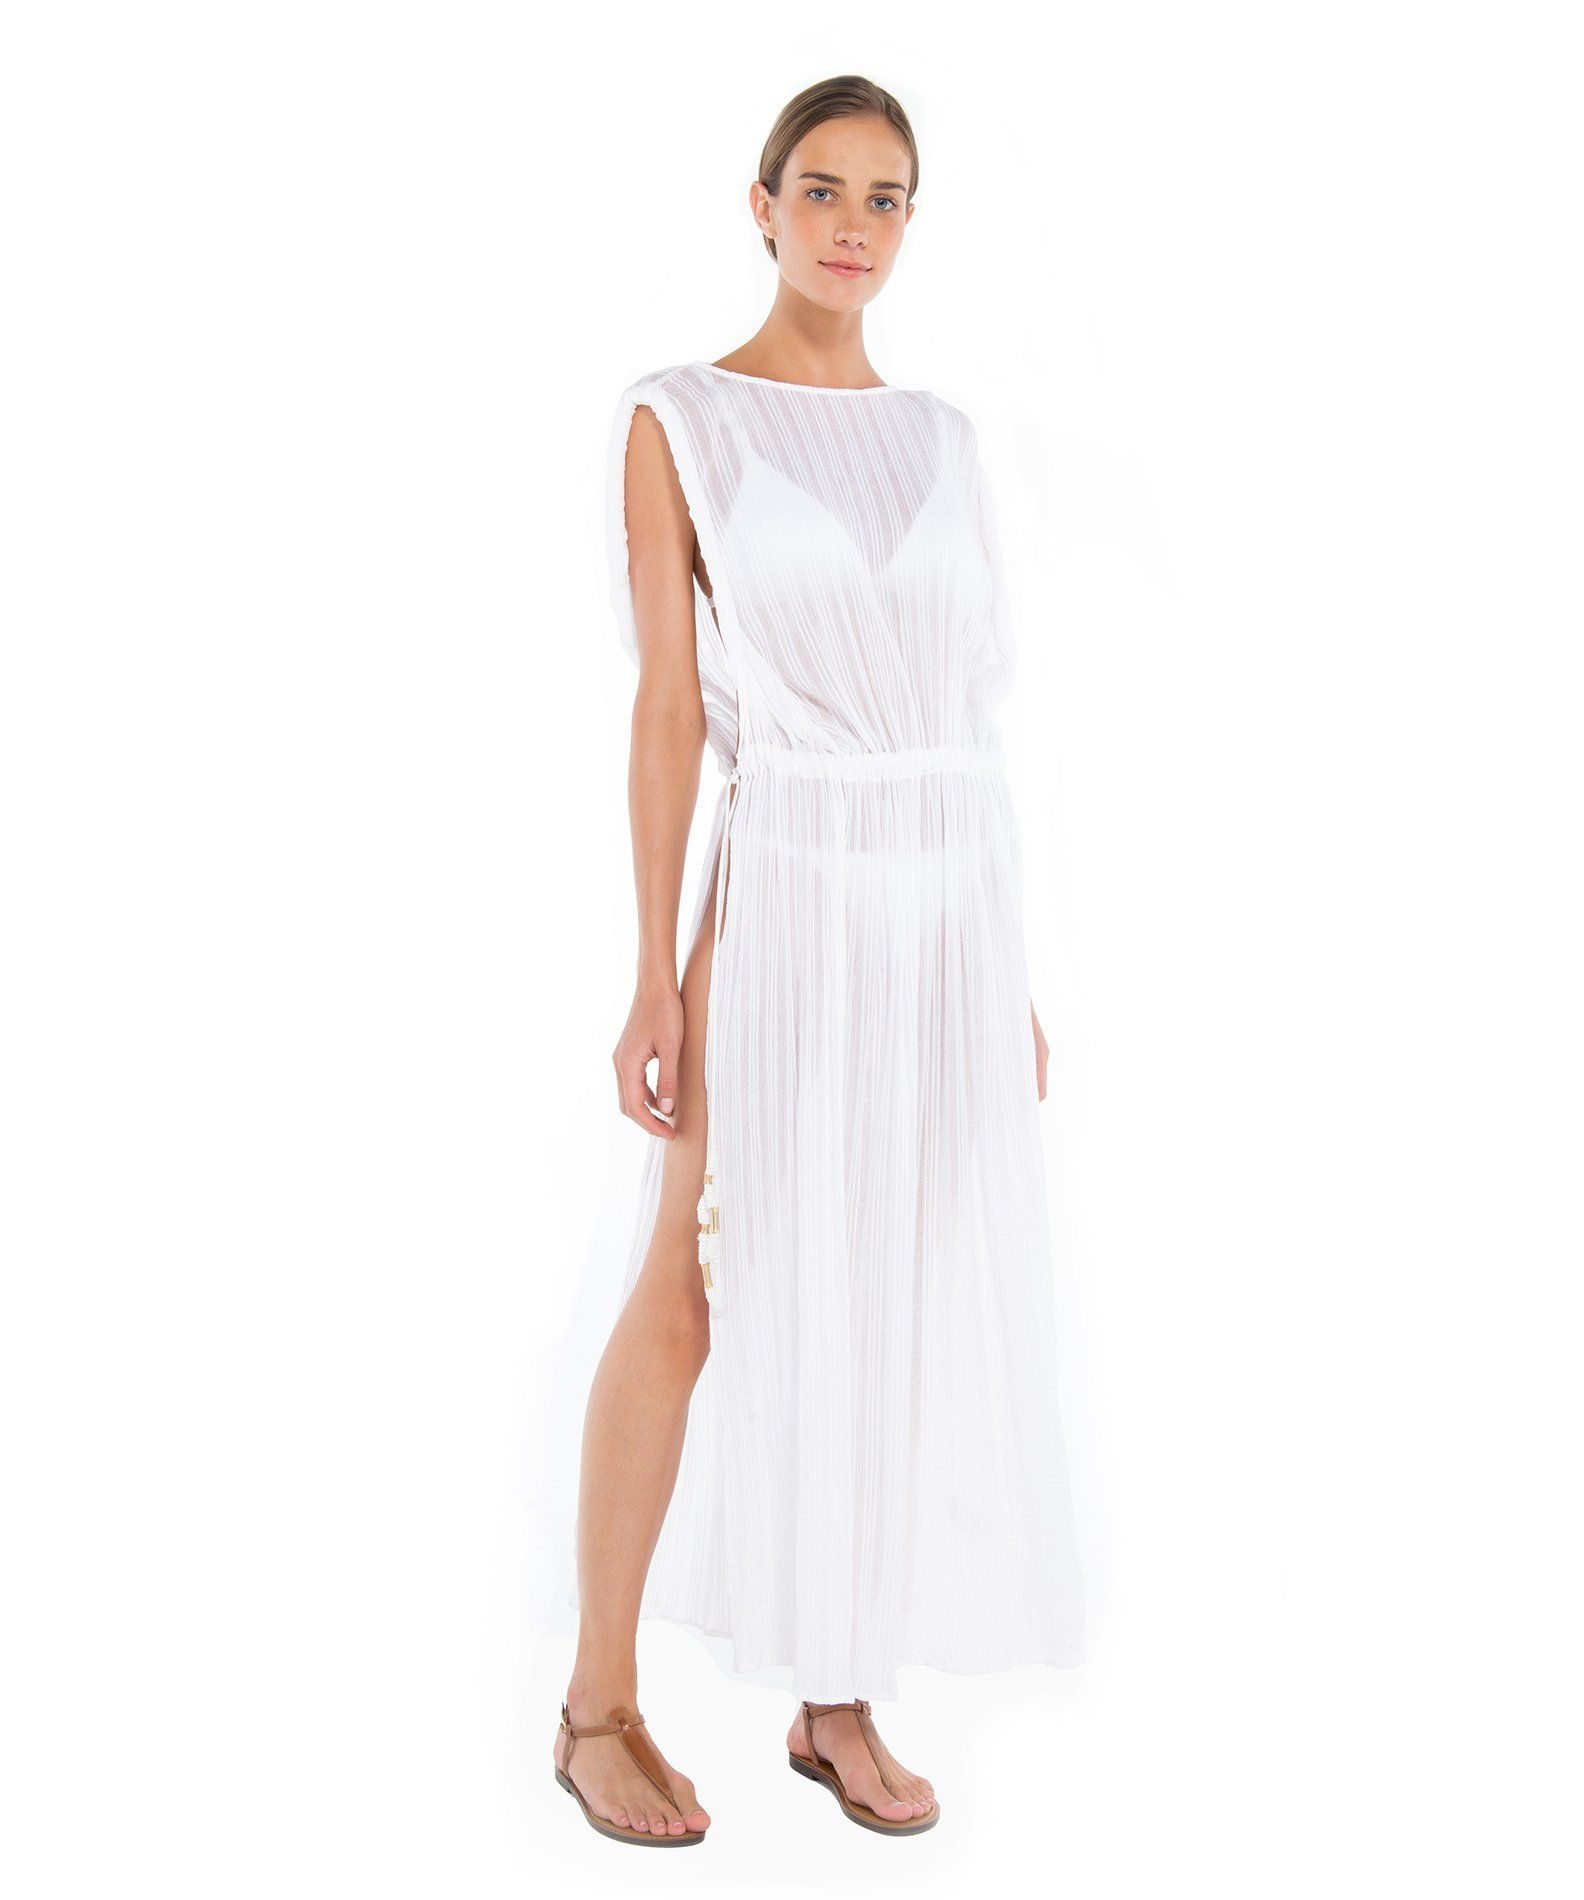 d21162ebce Channel your inner Grecian goddess in the beautiful Lisa Kaftan in White by  beachwear designer Vix available at Beach Cafe.